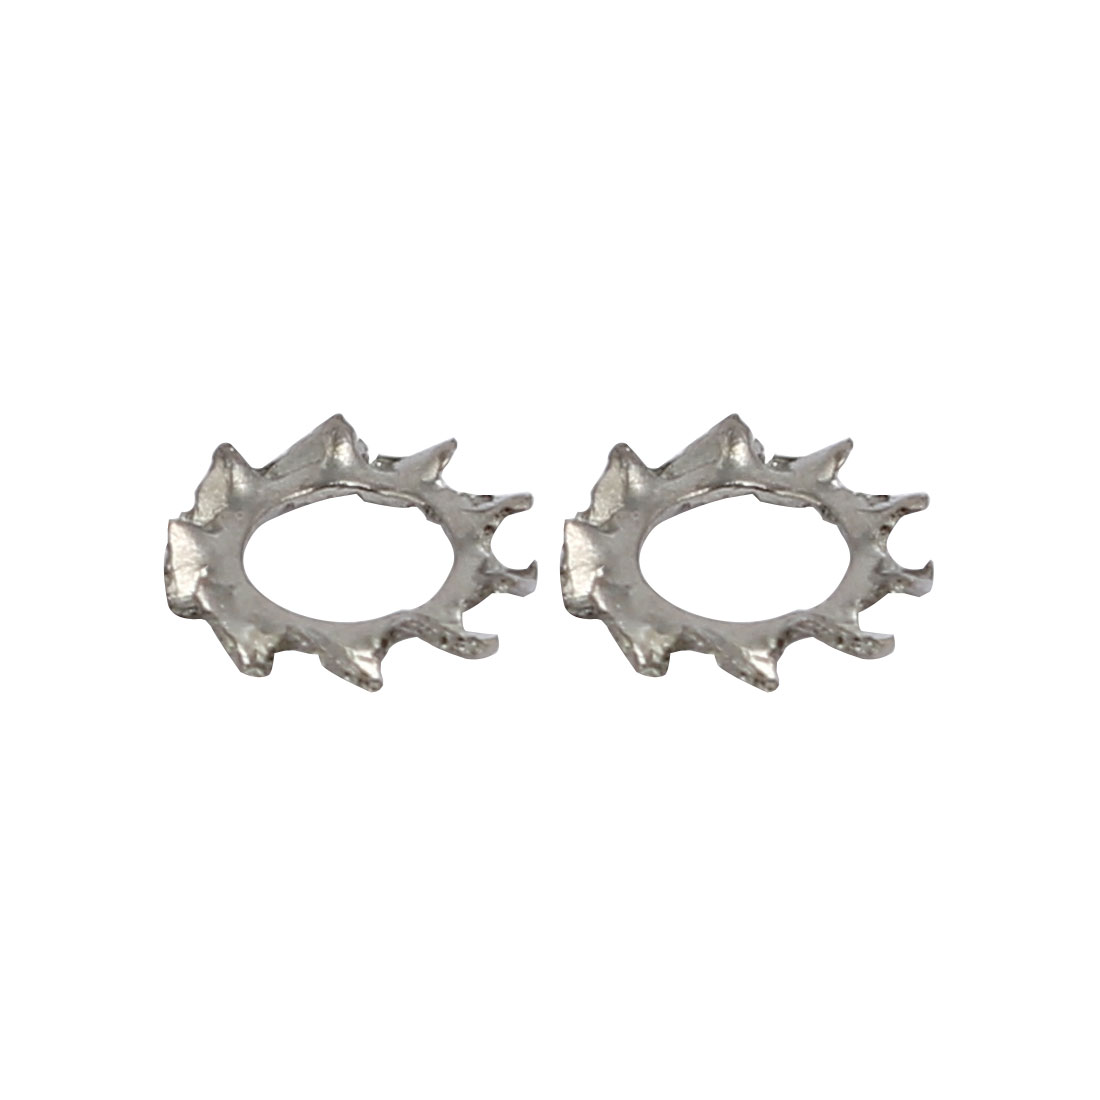 3mm Inner Dia 304 Stainless Steel External Tooth Lock Washer Silver Tone 100pcs - image 1 of 2